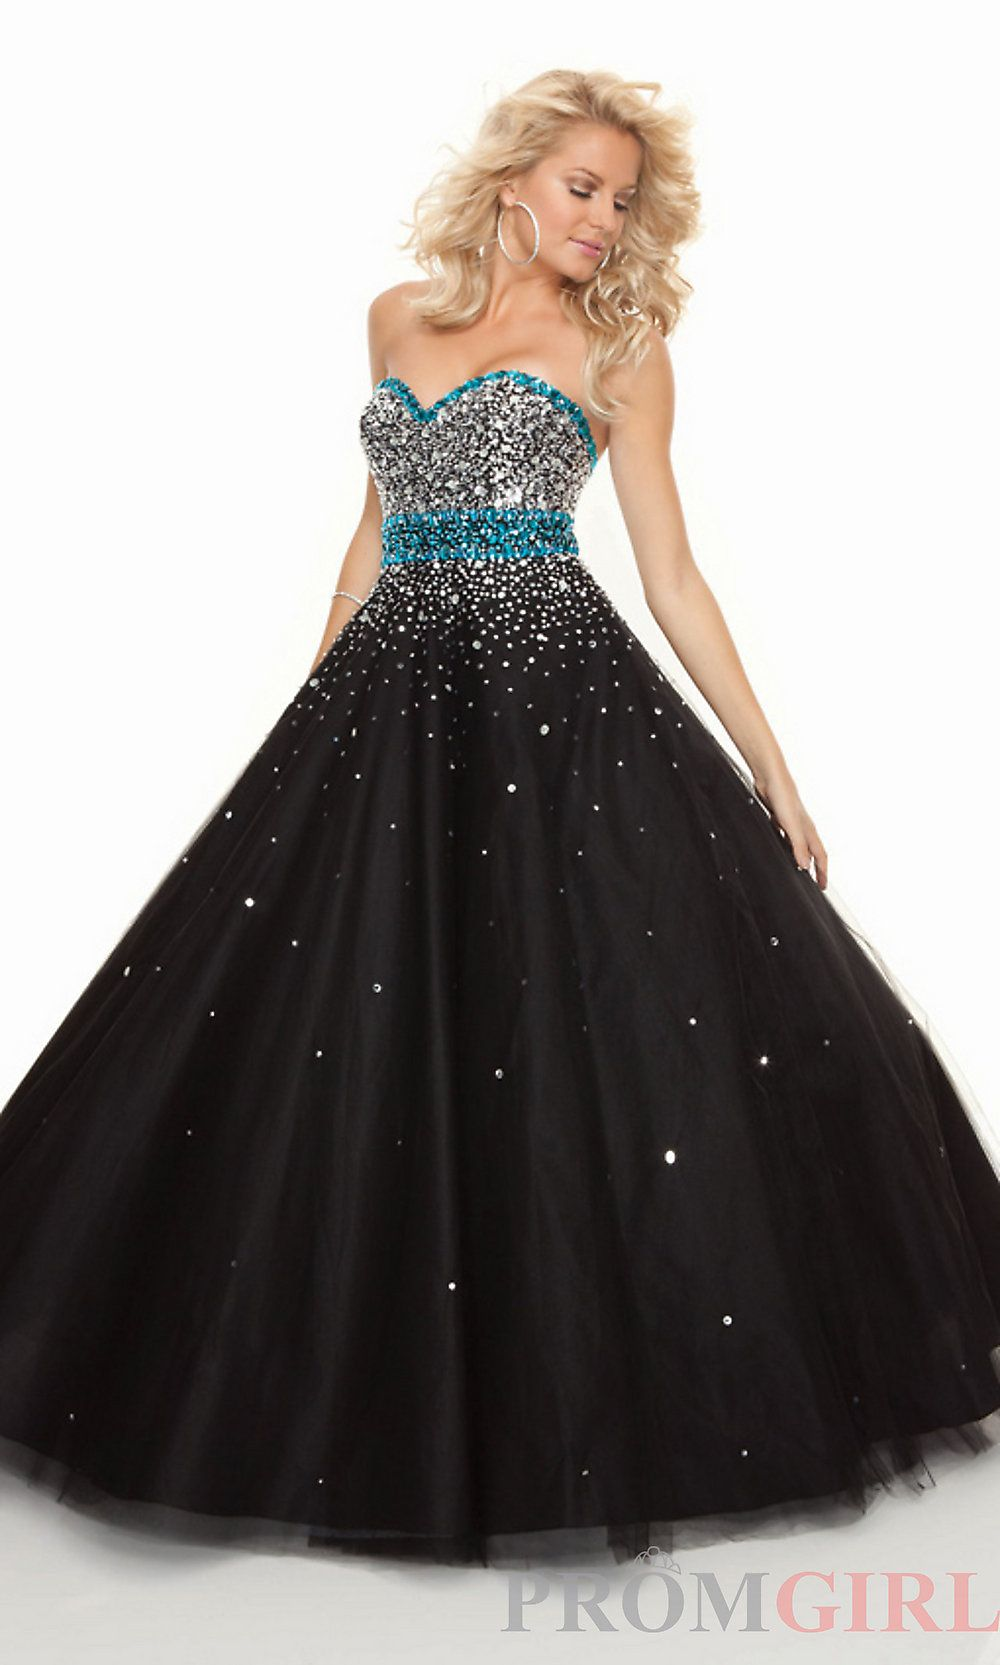 Ball Gowns Dresses for Prom